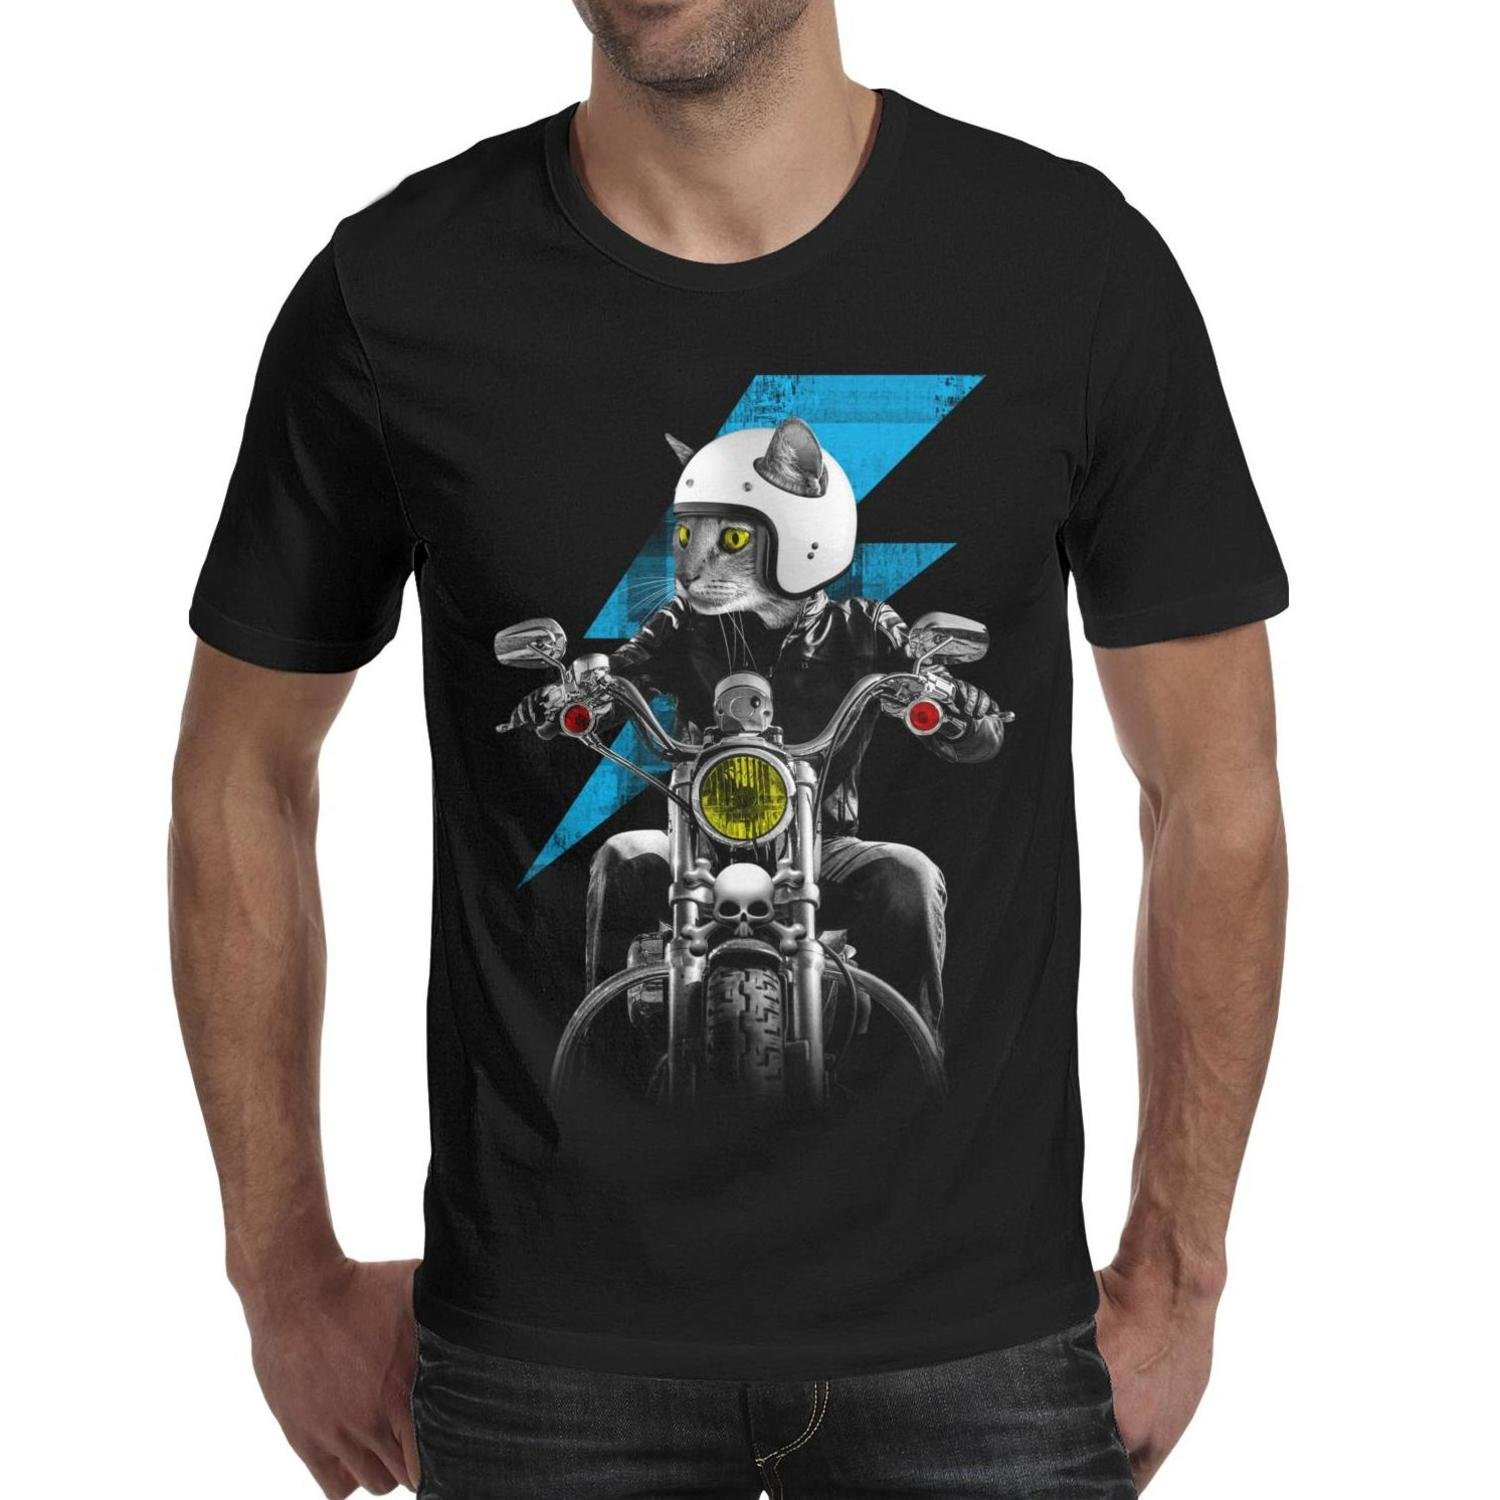 Cat Ride The Motorcycle Vintage T Shirts For 80s